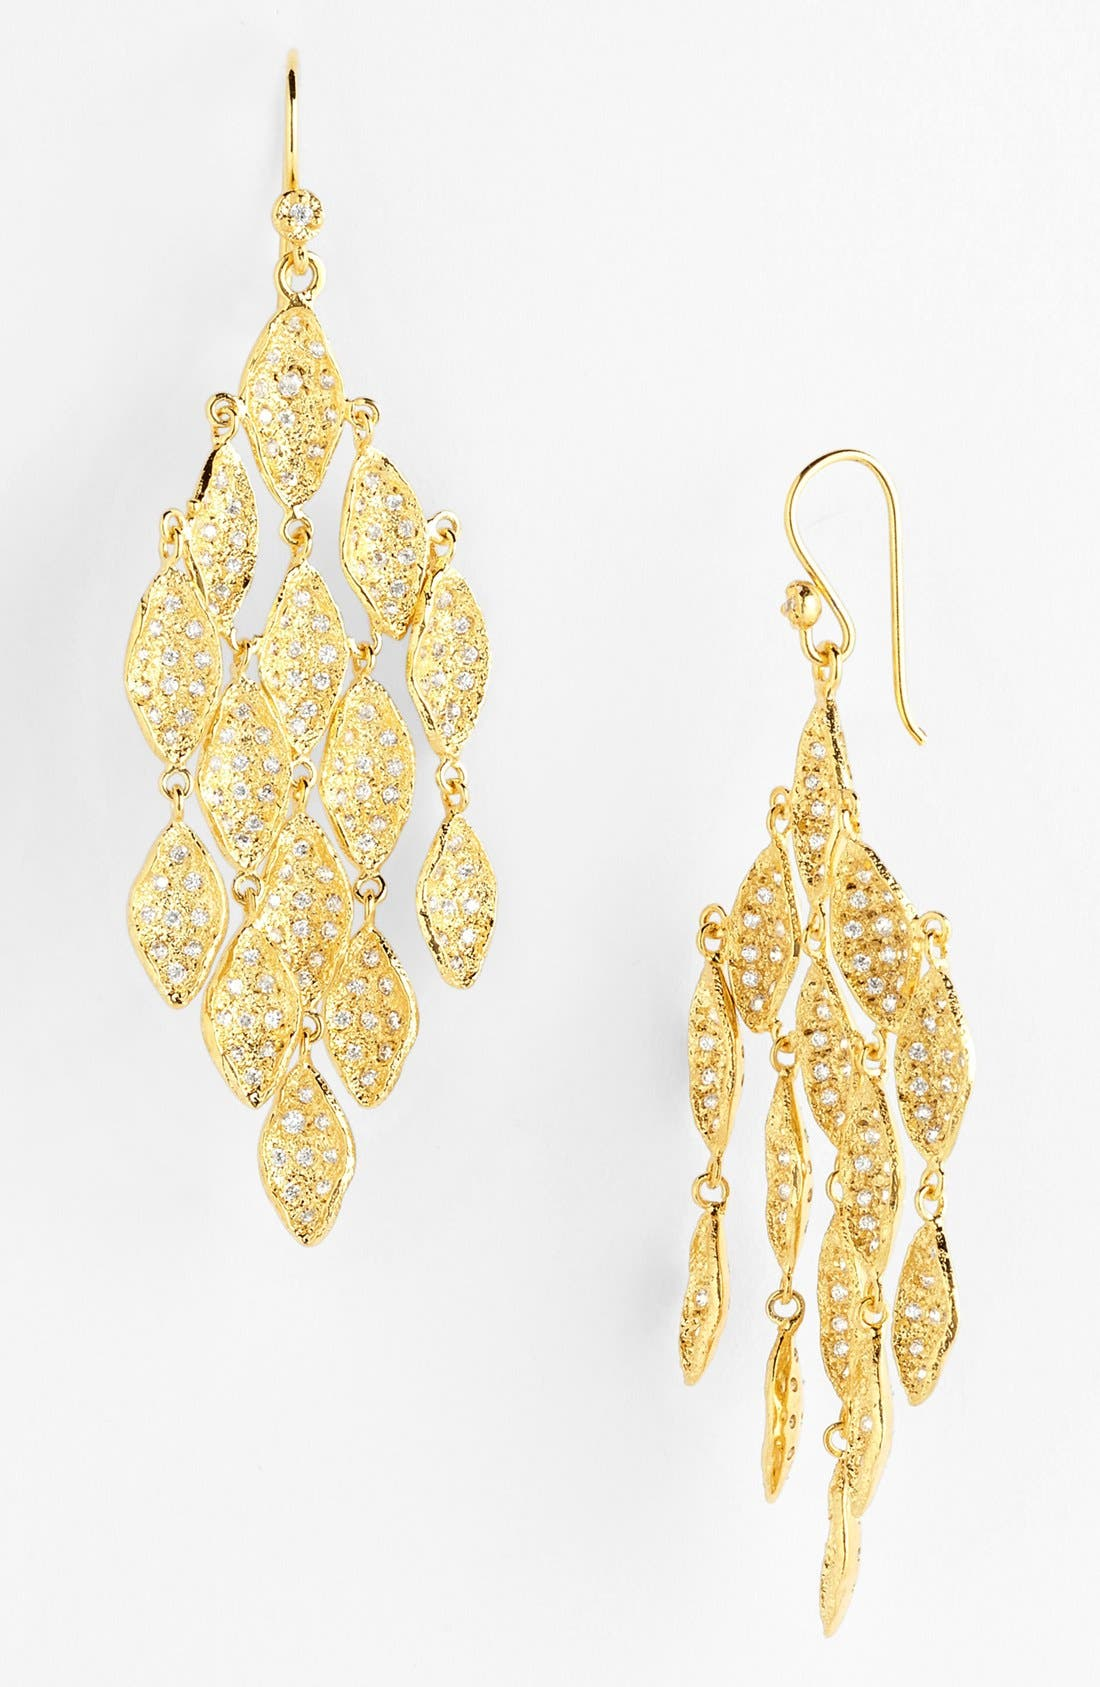 Alternate Image 1 Selected - Melinda Maria 'Gwyneth' Chandelier Earrings